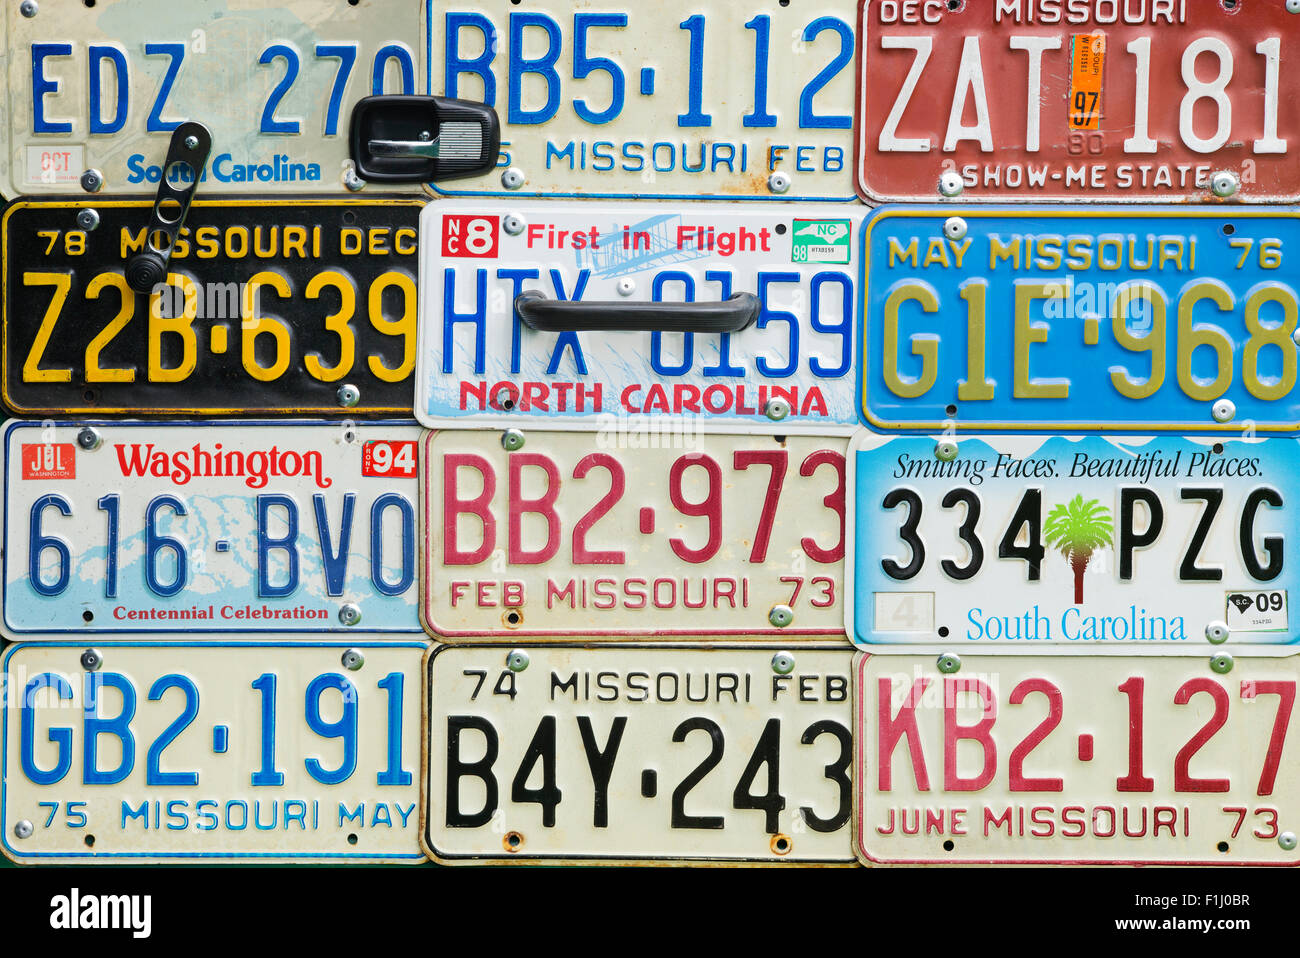 American license plates used as a door panel in a vw beetle car  sc 1 st  Alamy & American license plates used as a door panel in a vw beetle car ... pezcame.com